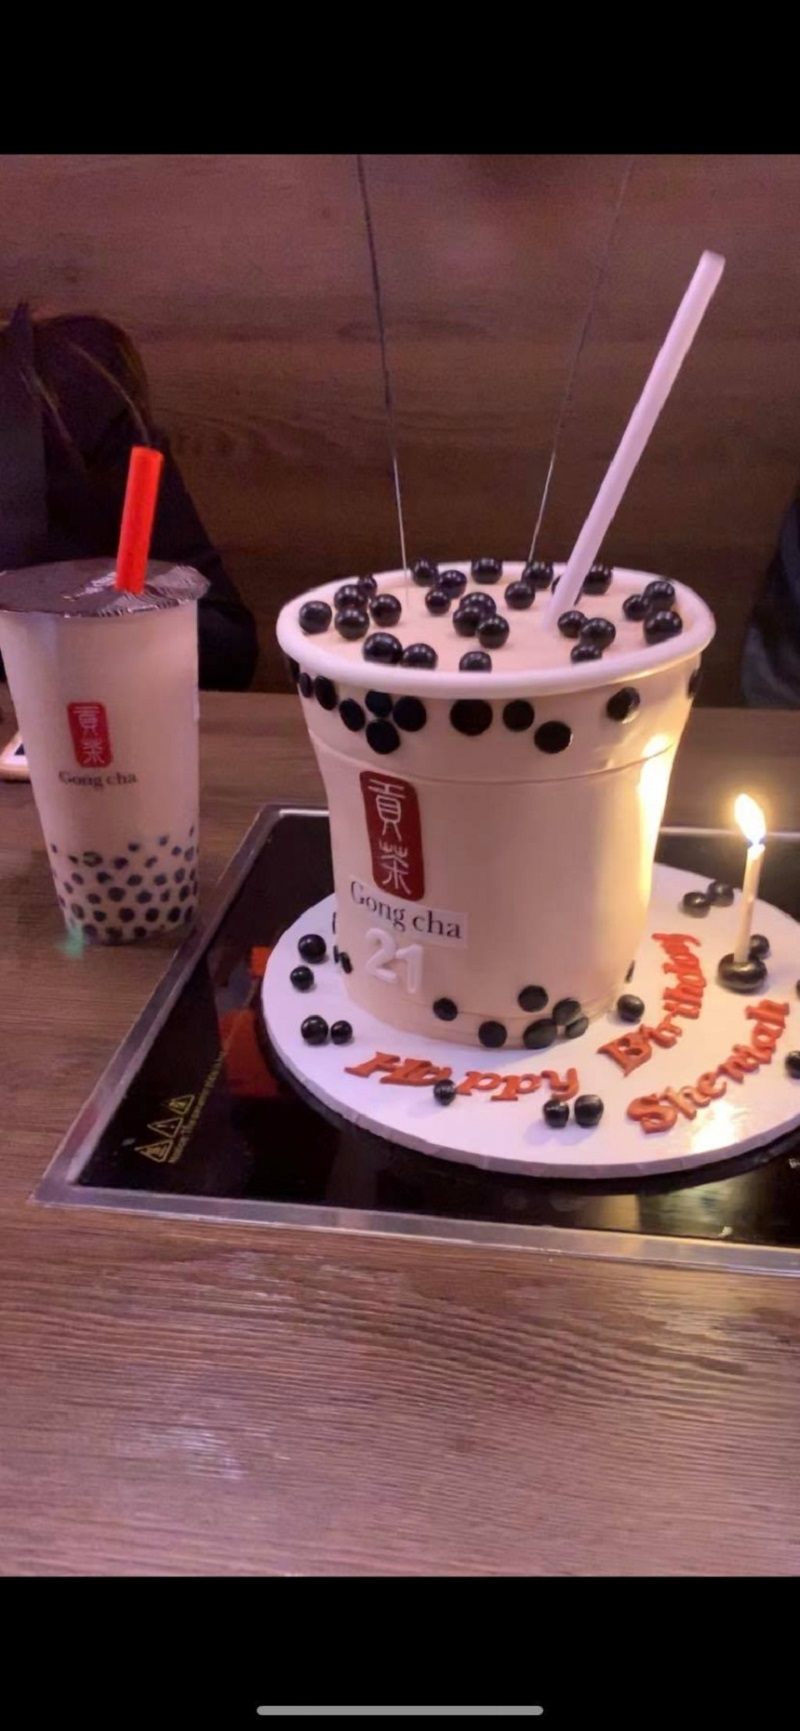 girl-surprised-with-3d-boba-themed-cake-on-her-21st-birthday-world-of-buzz-768×1662 (1)